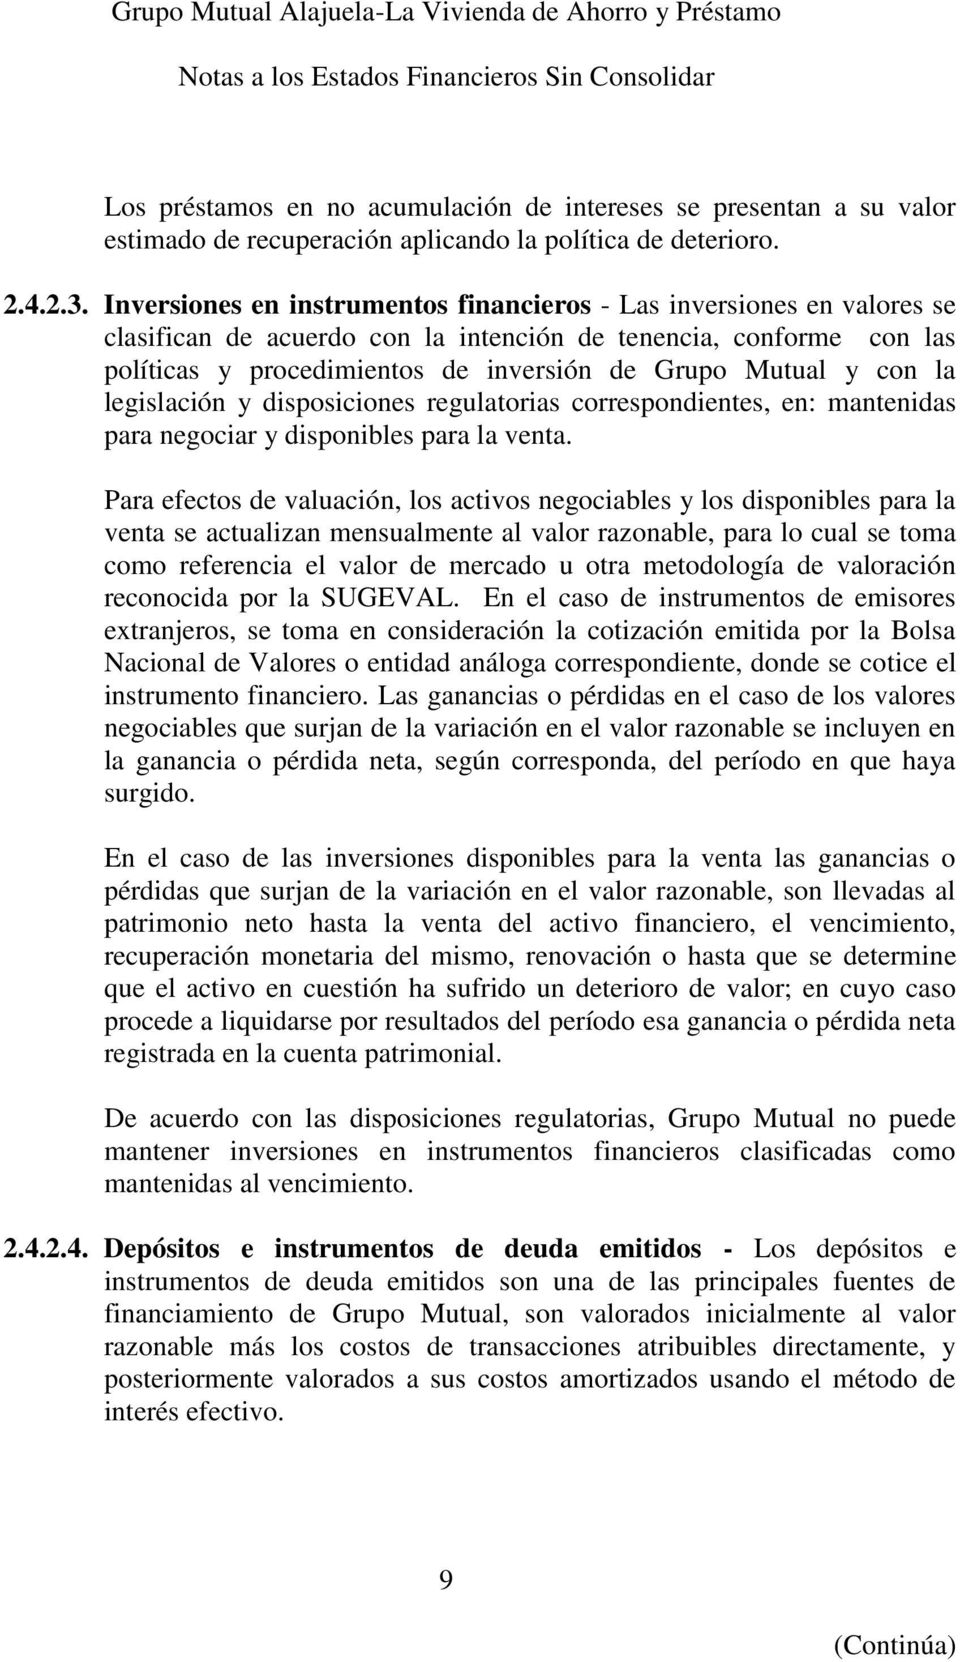 con la legislación y disposiciones regulatorias correspondientes, en: mantenidas para negociar y disponibles para la venta.